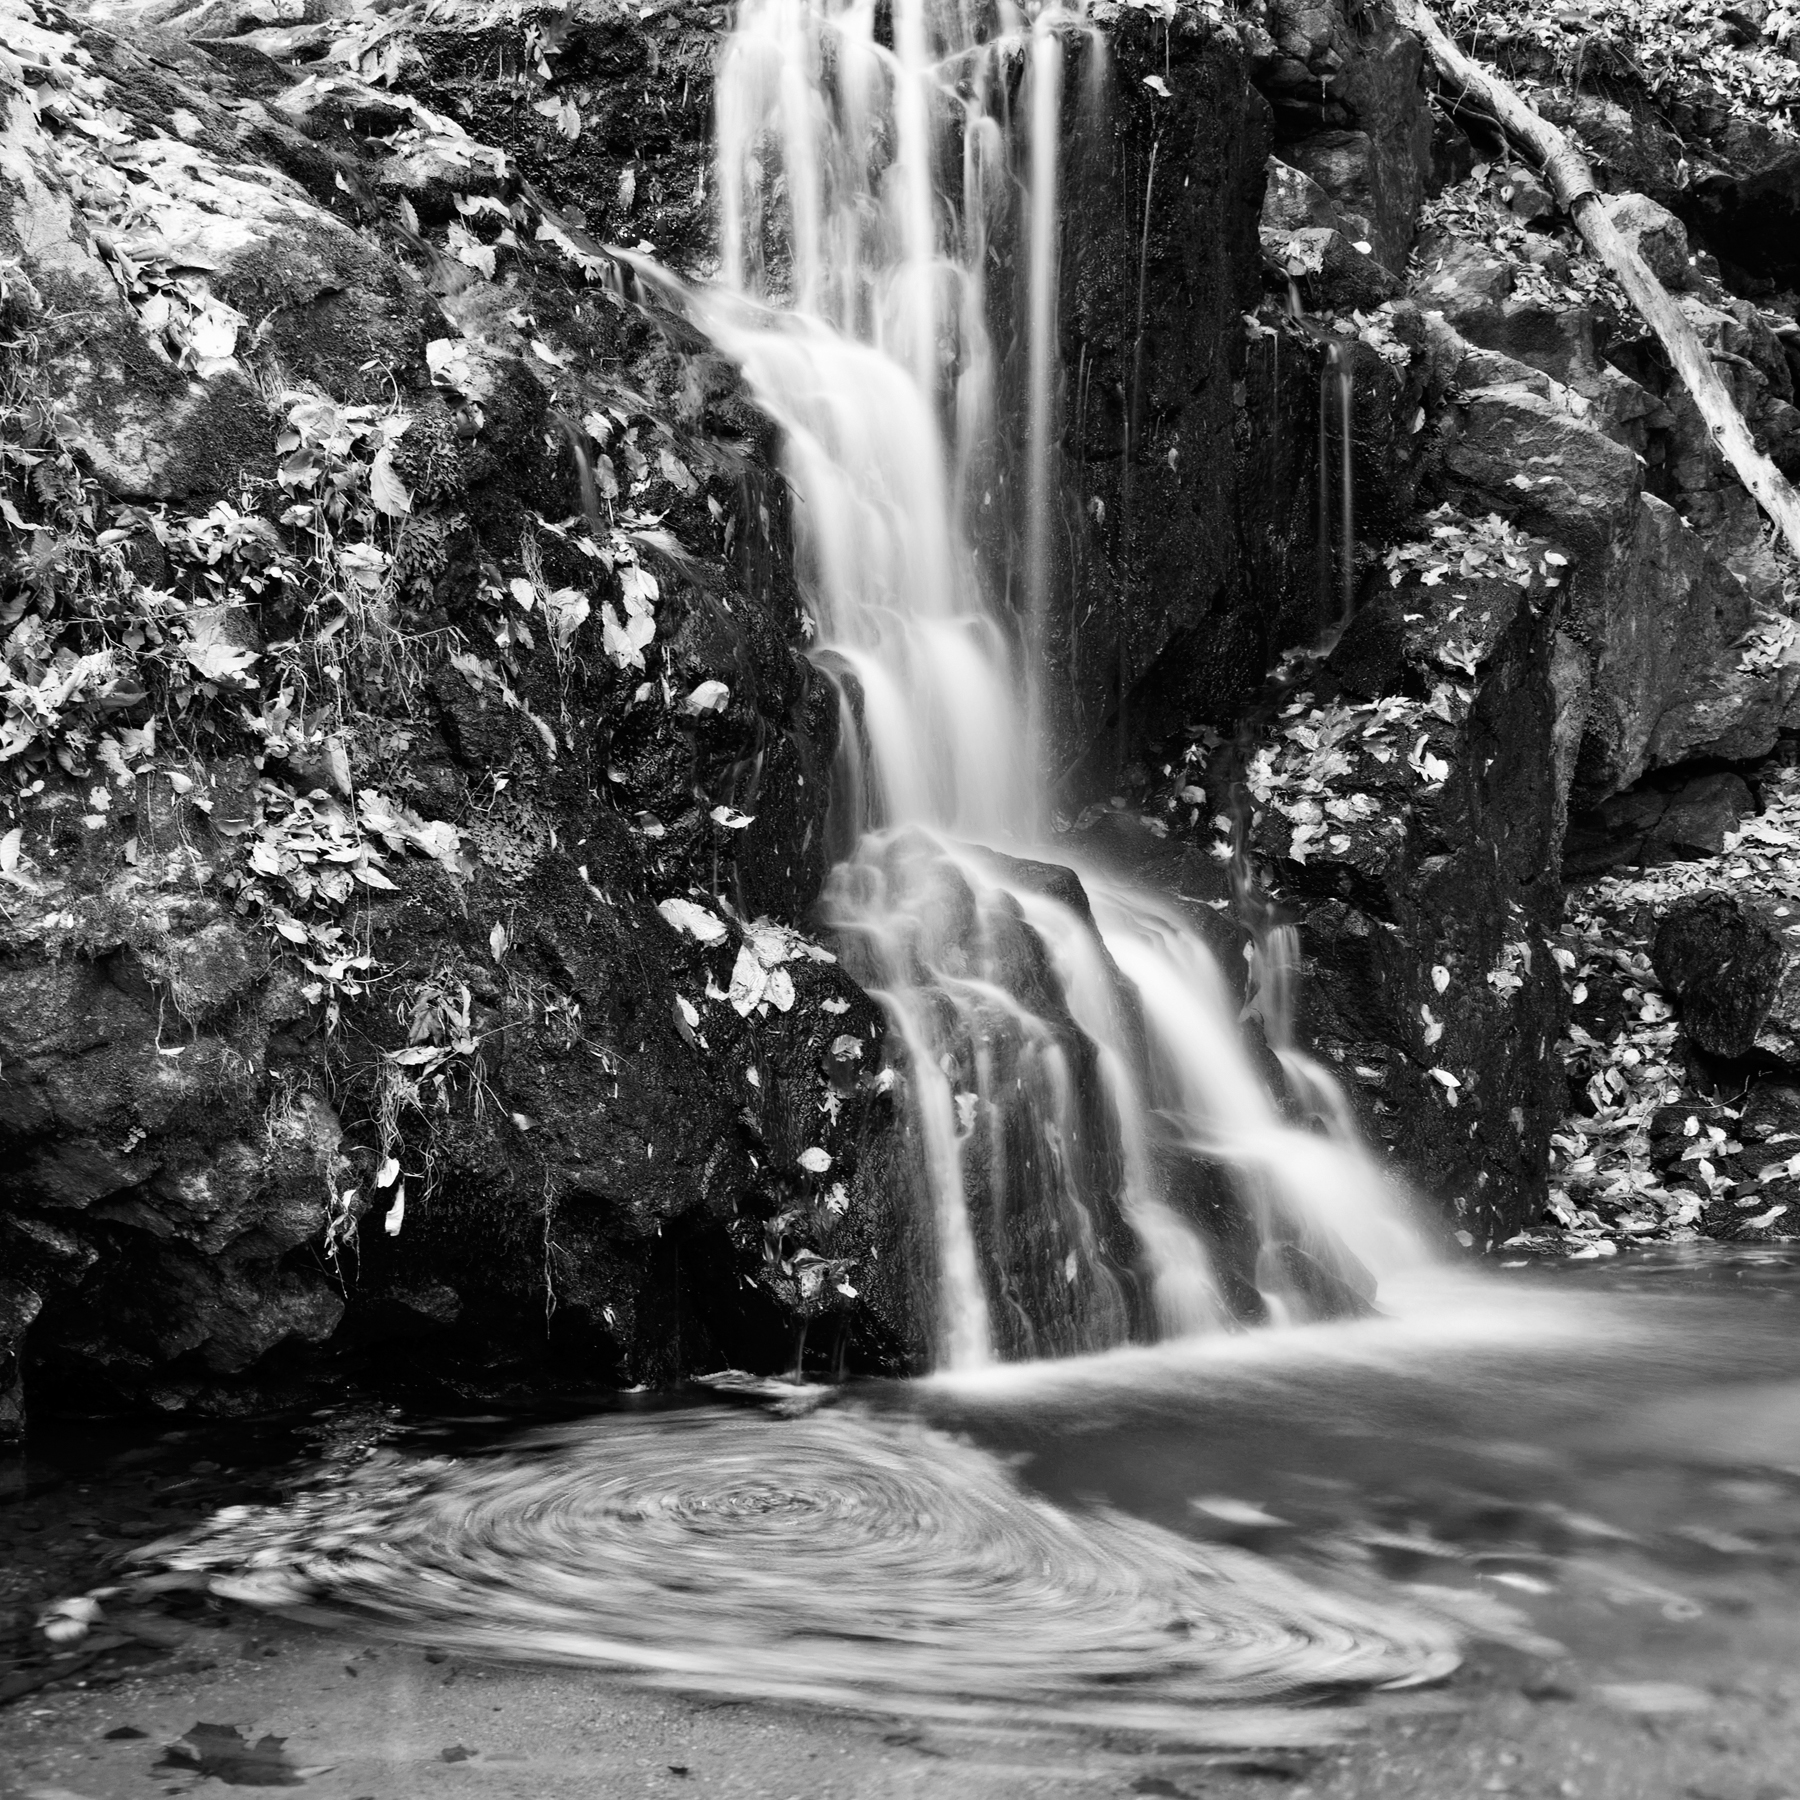 Avalon Falls - Black and White, Rocks, Shadows, Shadow, Shades, HQ Photo